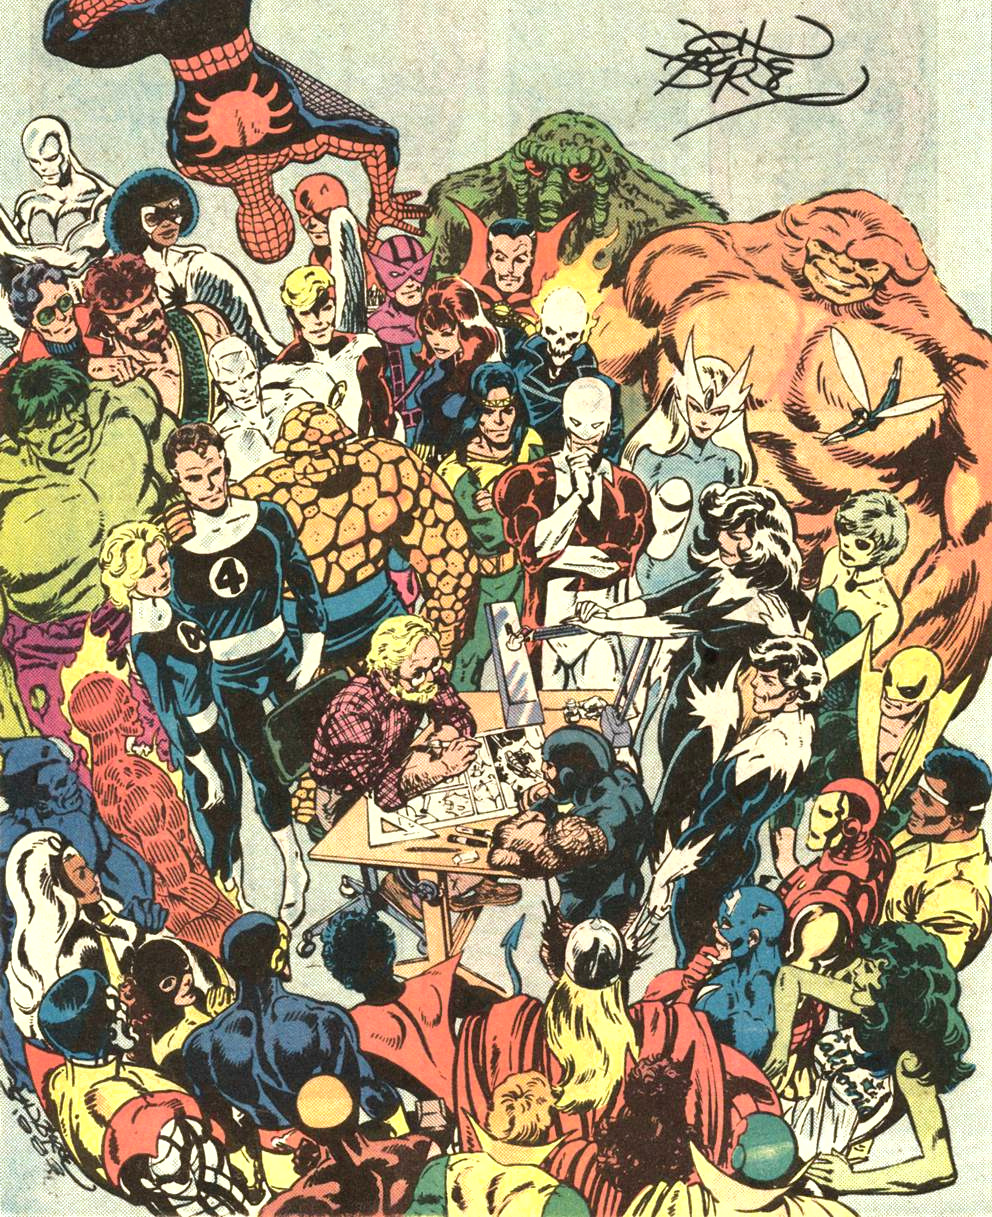 john byrne at marvel